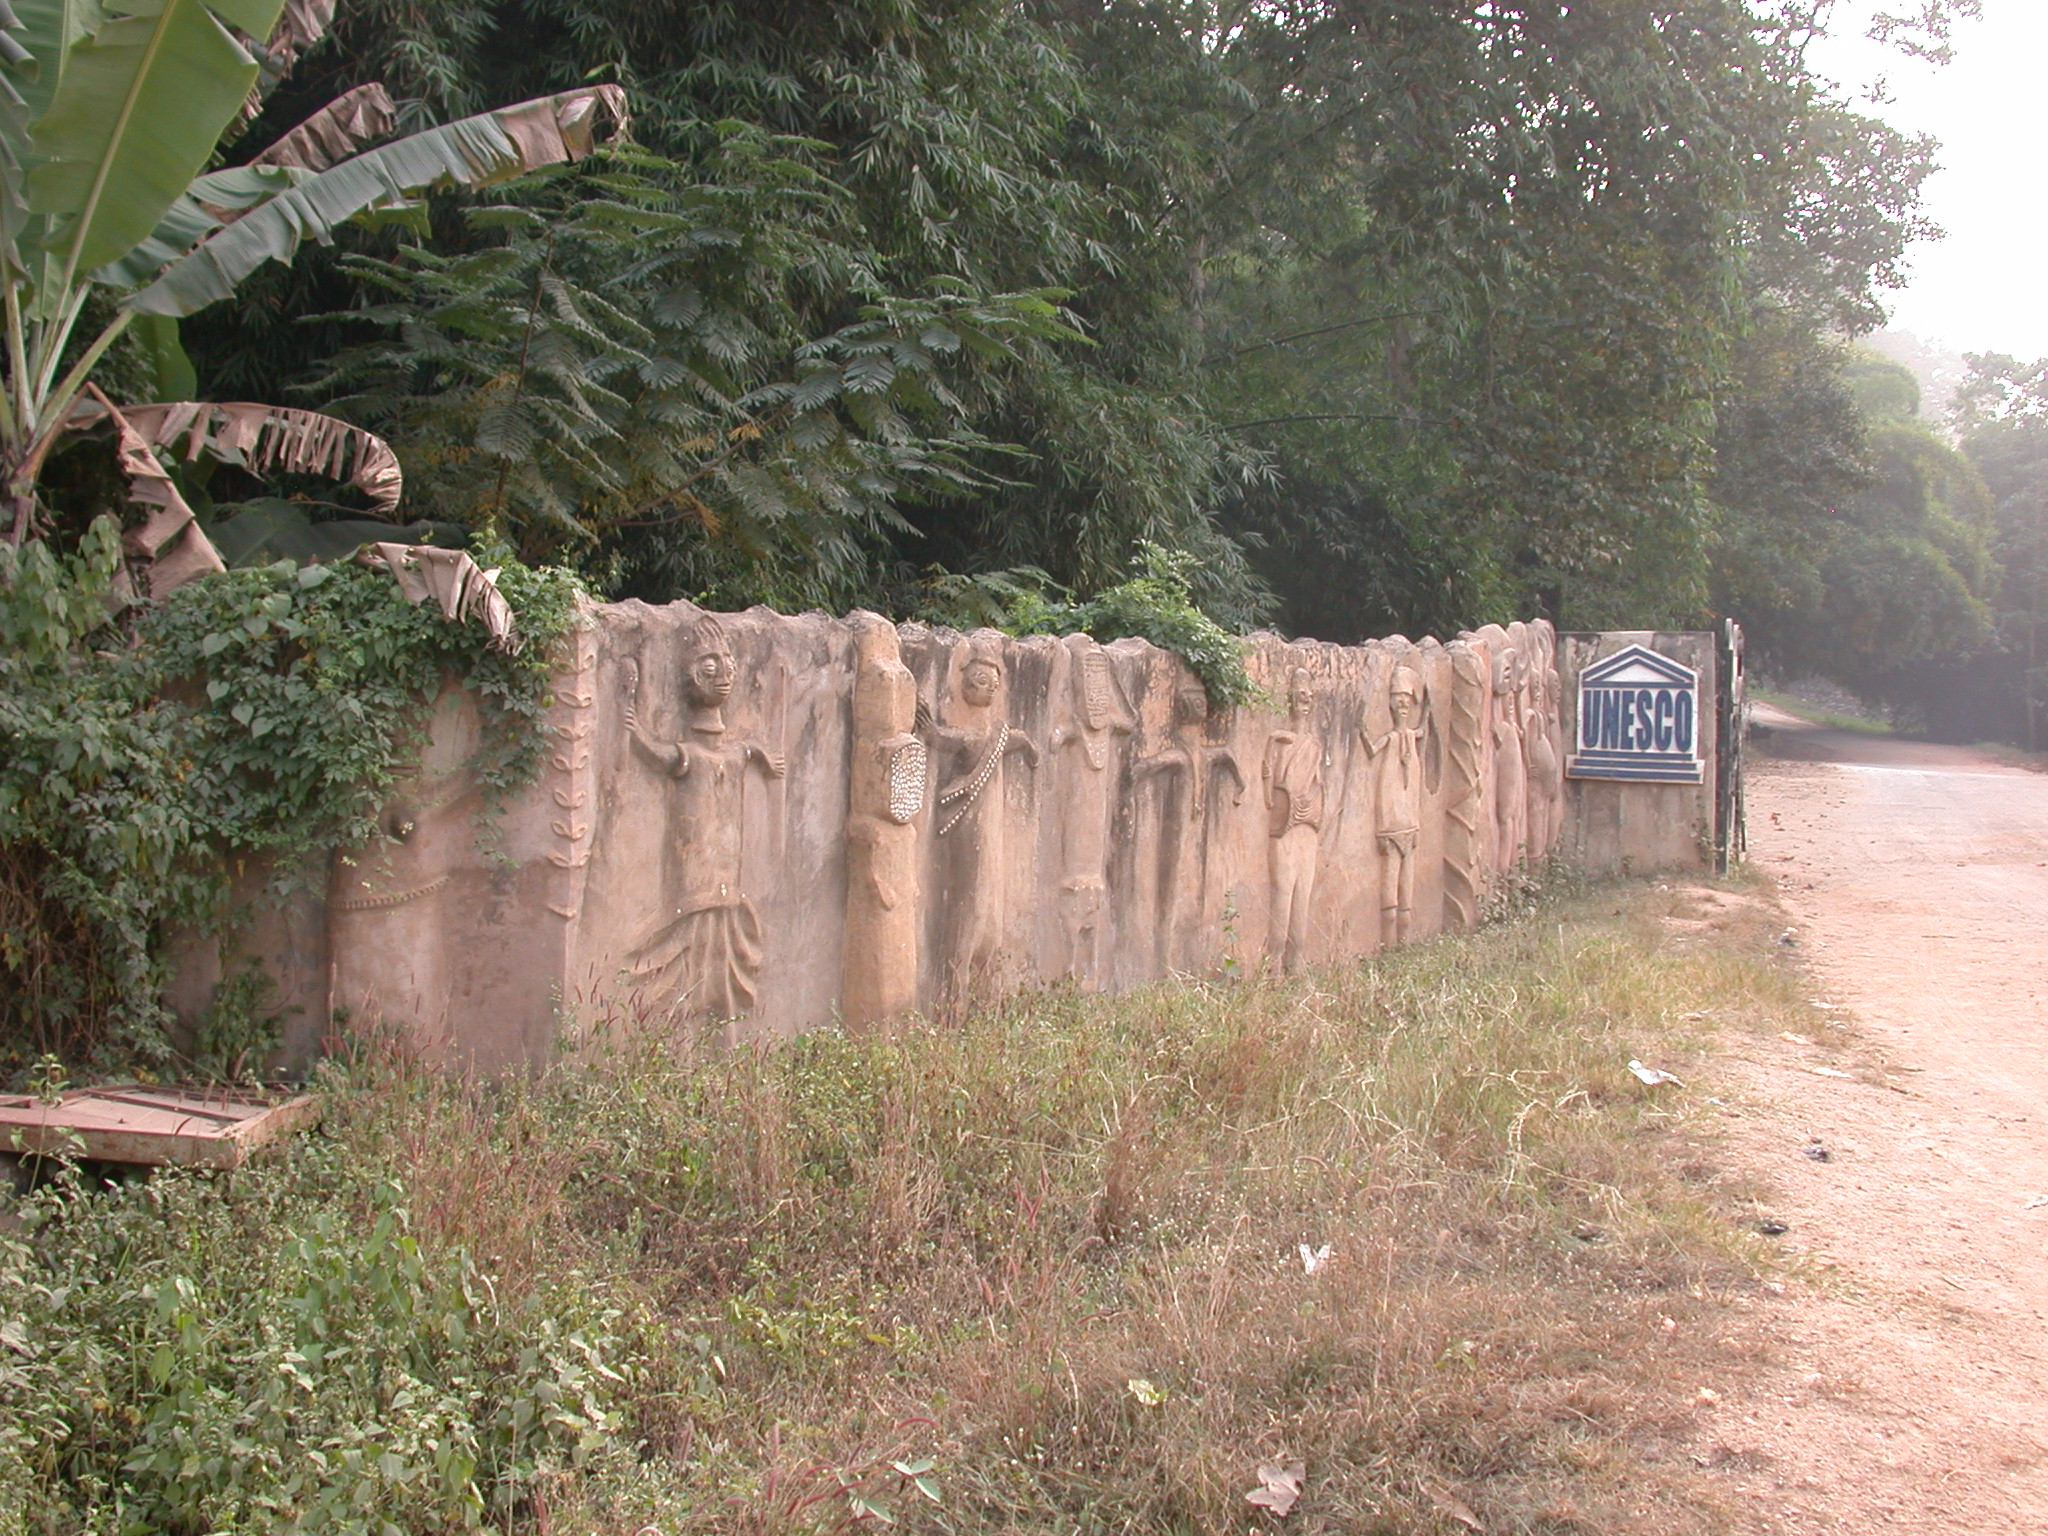 Sculptured Wall at Entrance, Osun Sacred Grove, Oshogbo, Nigeria